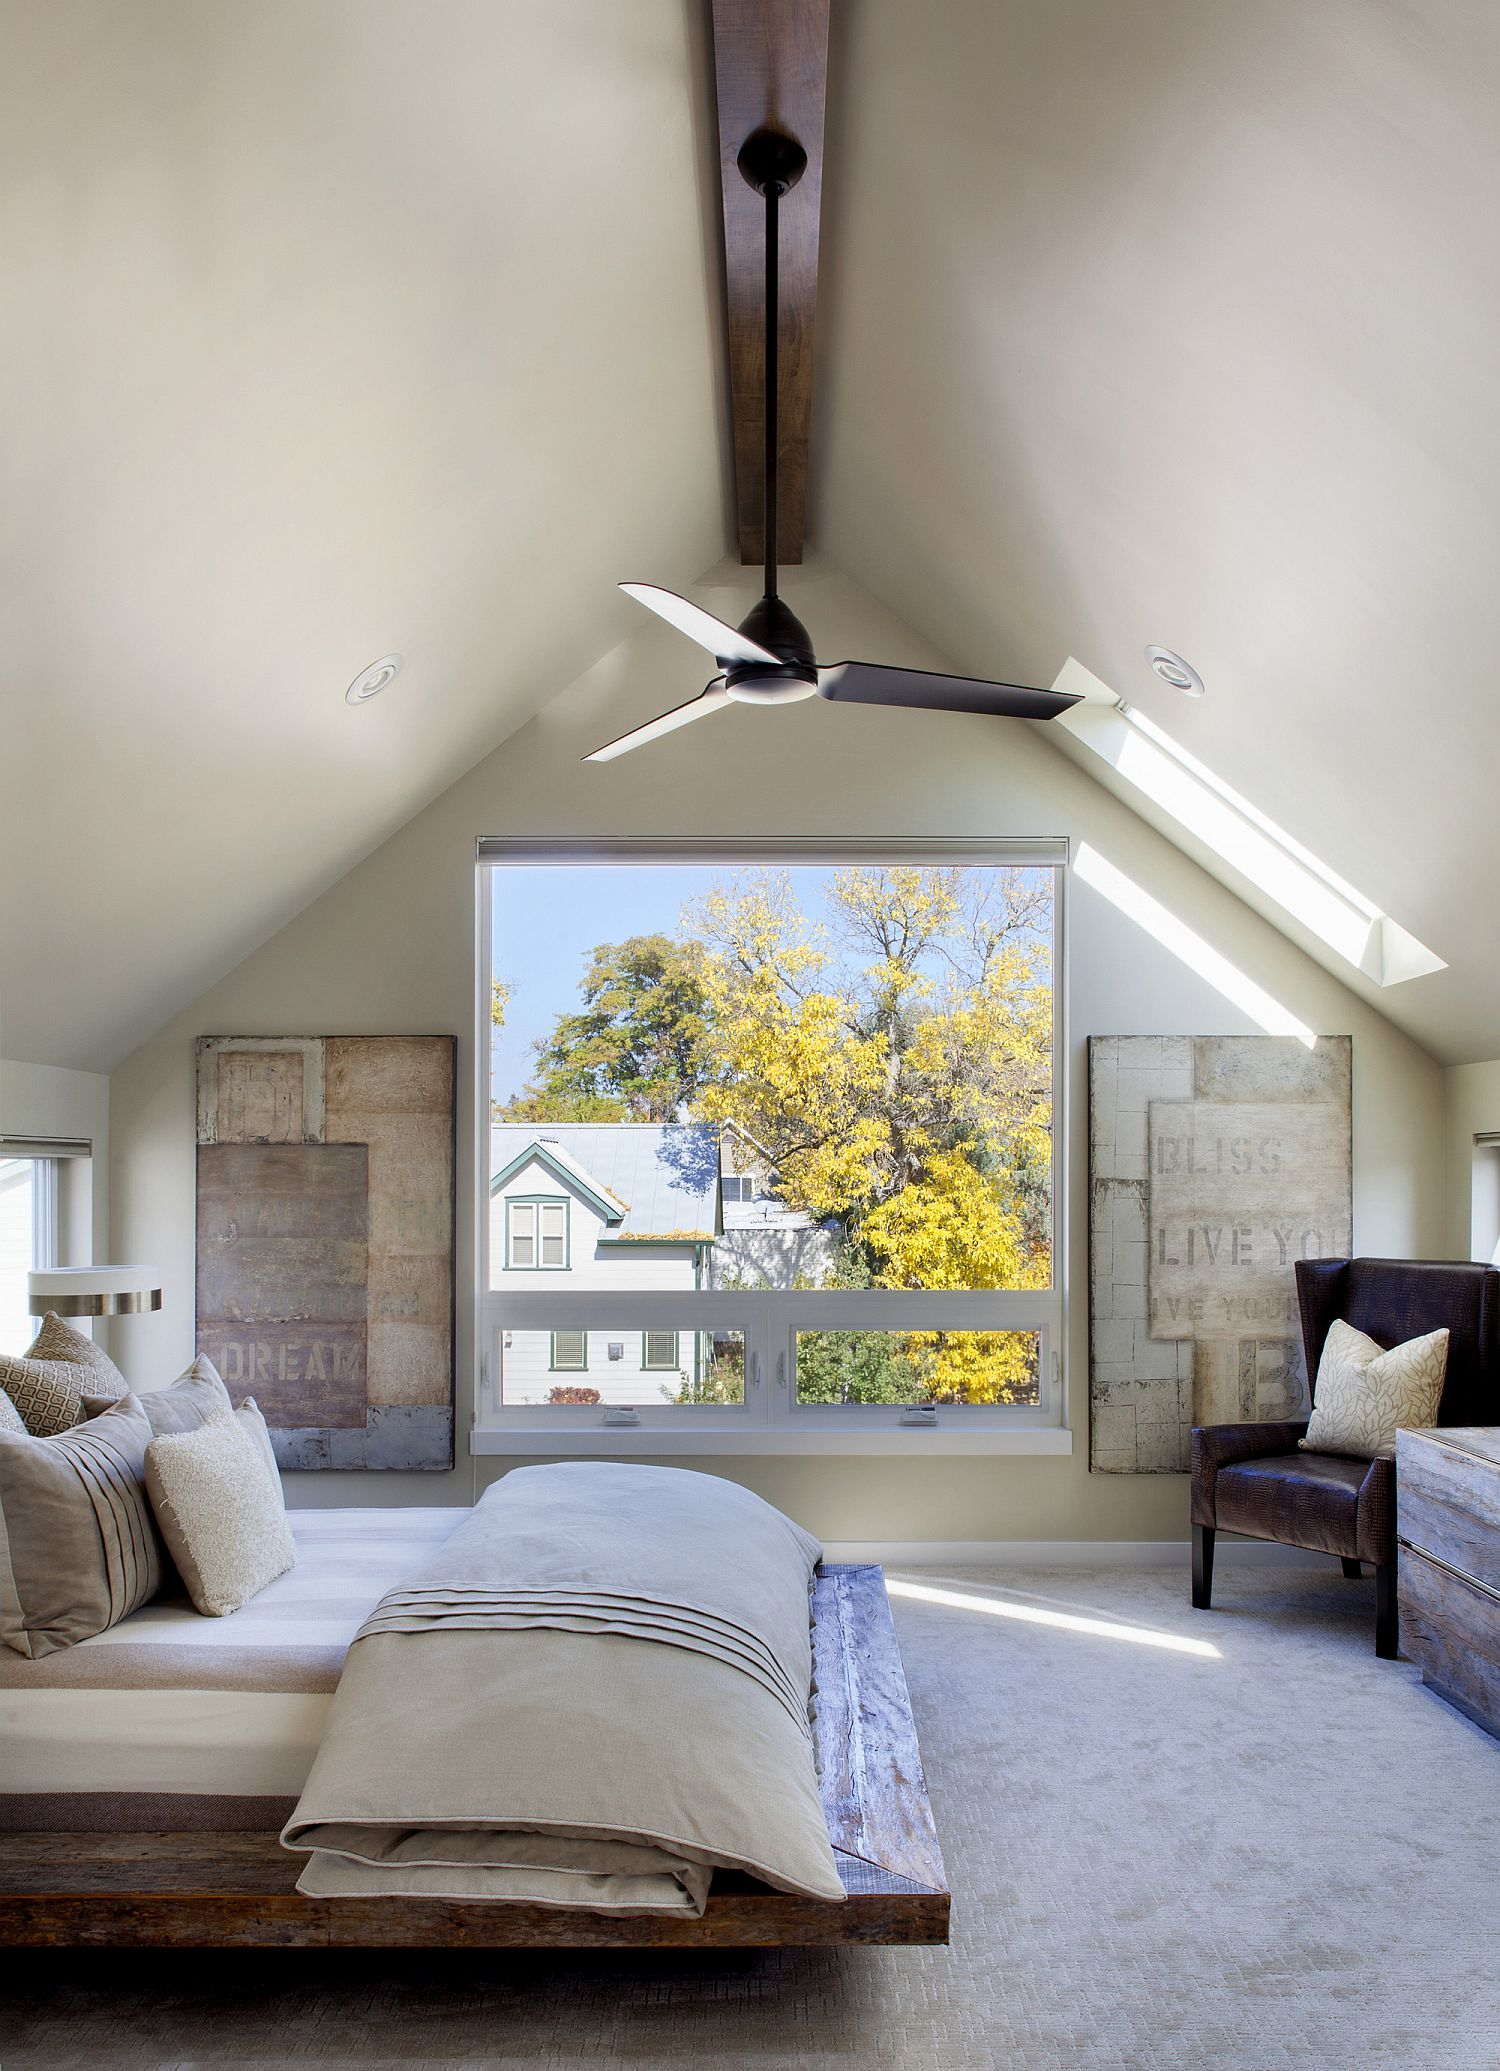 Gorgeous master bedroom with a view to match the interior!